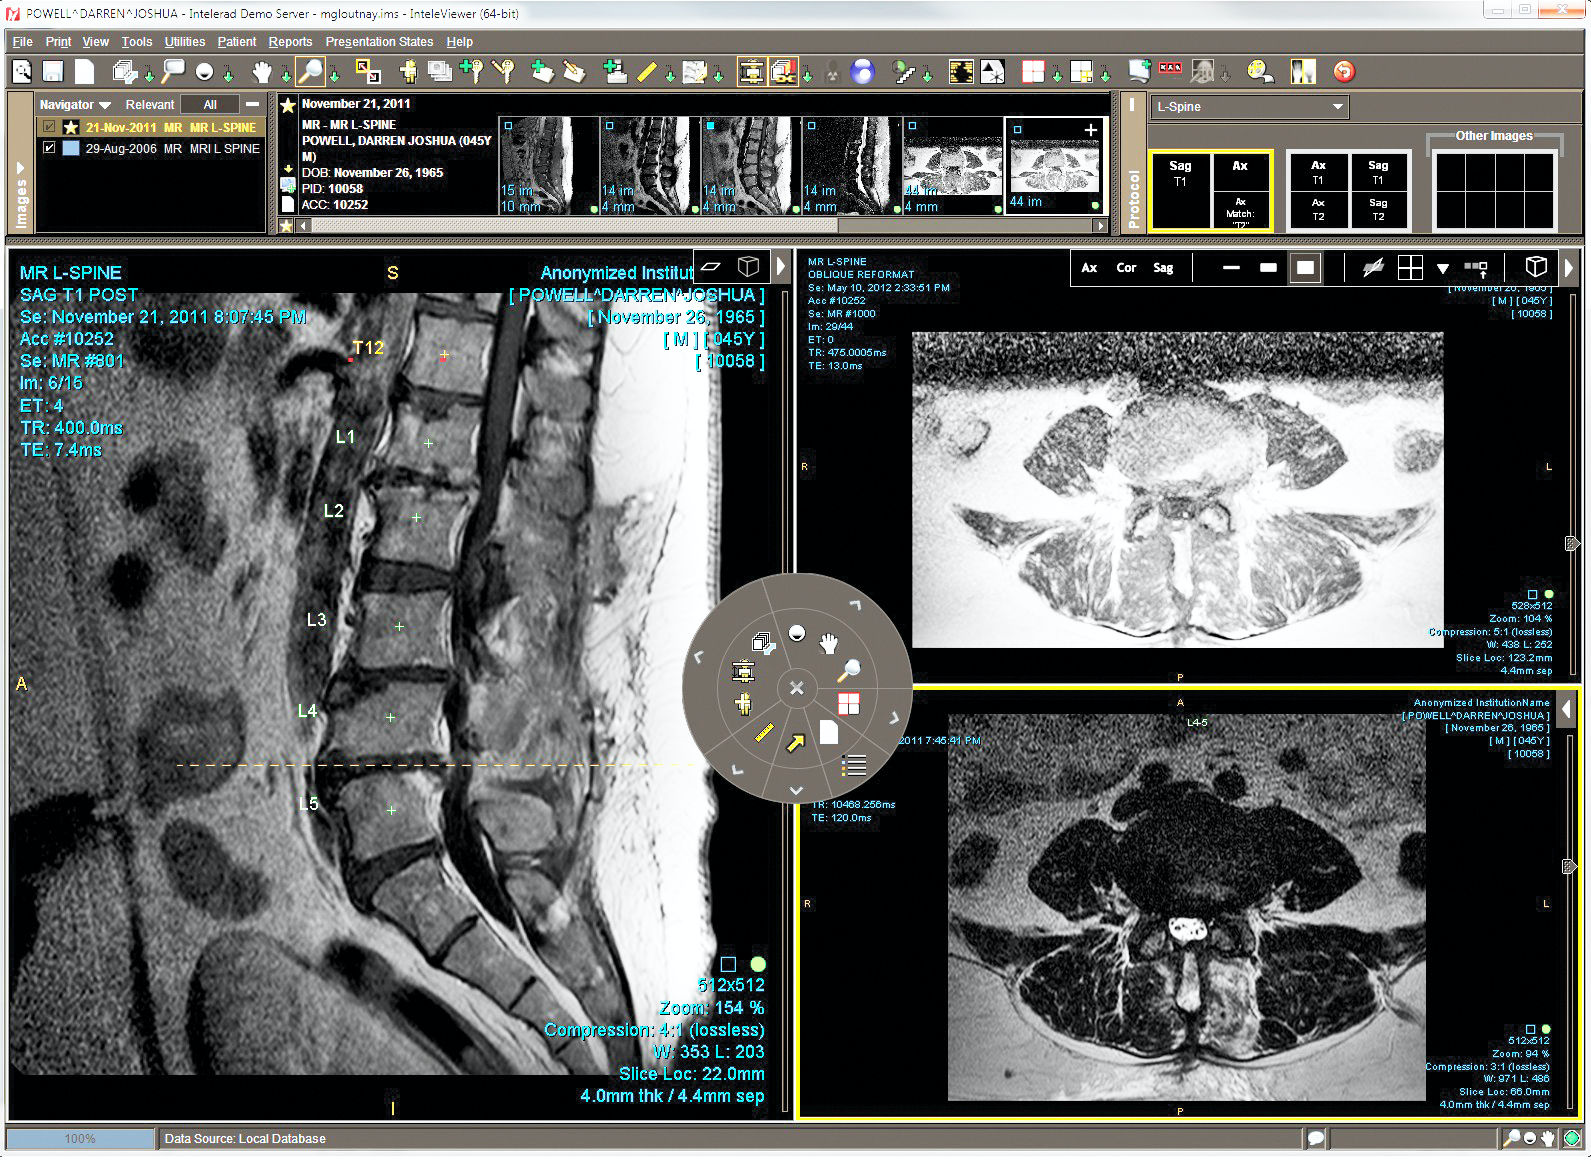 Model information can be viewed along with patient information